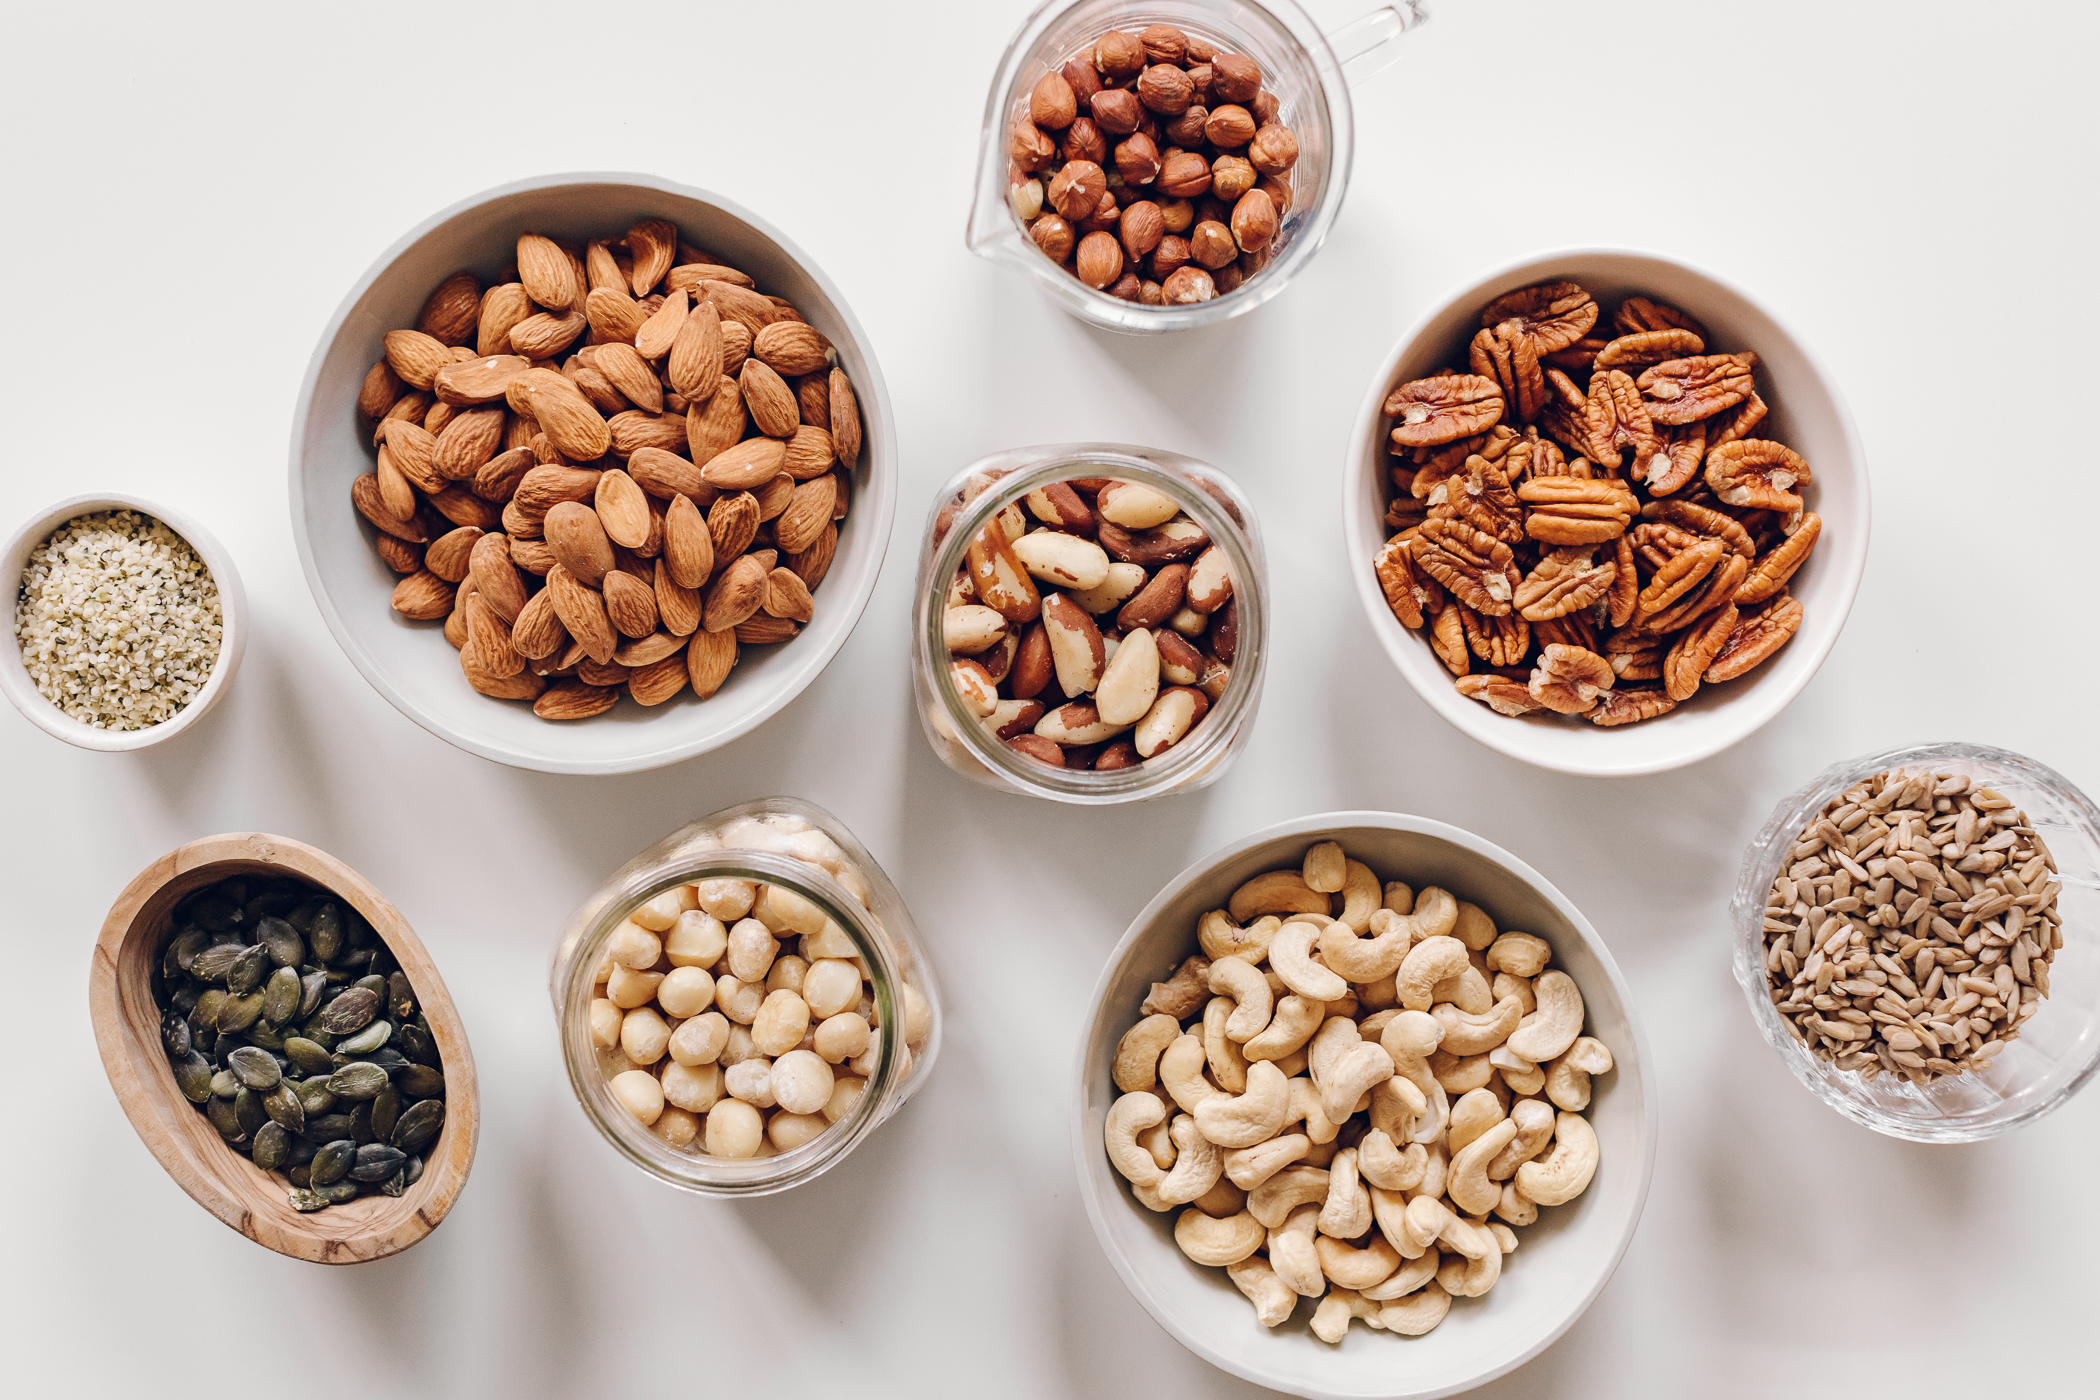 How to Make Nut & Seed Milks by Jessie May